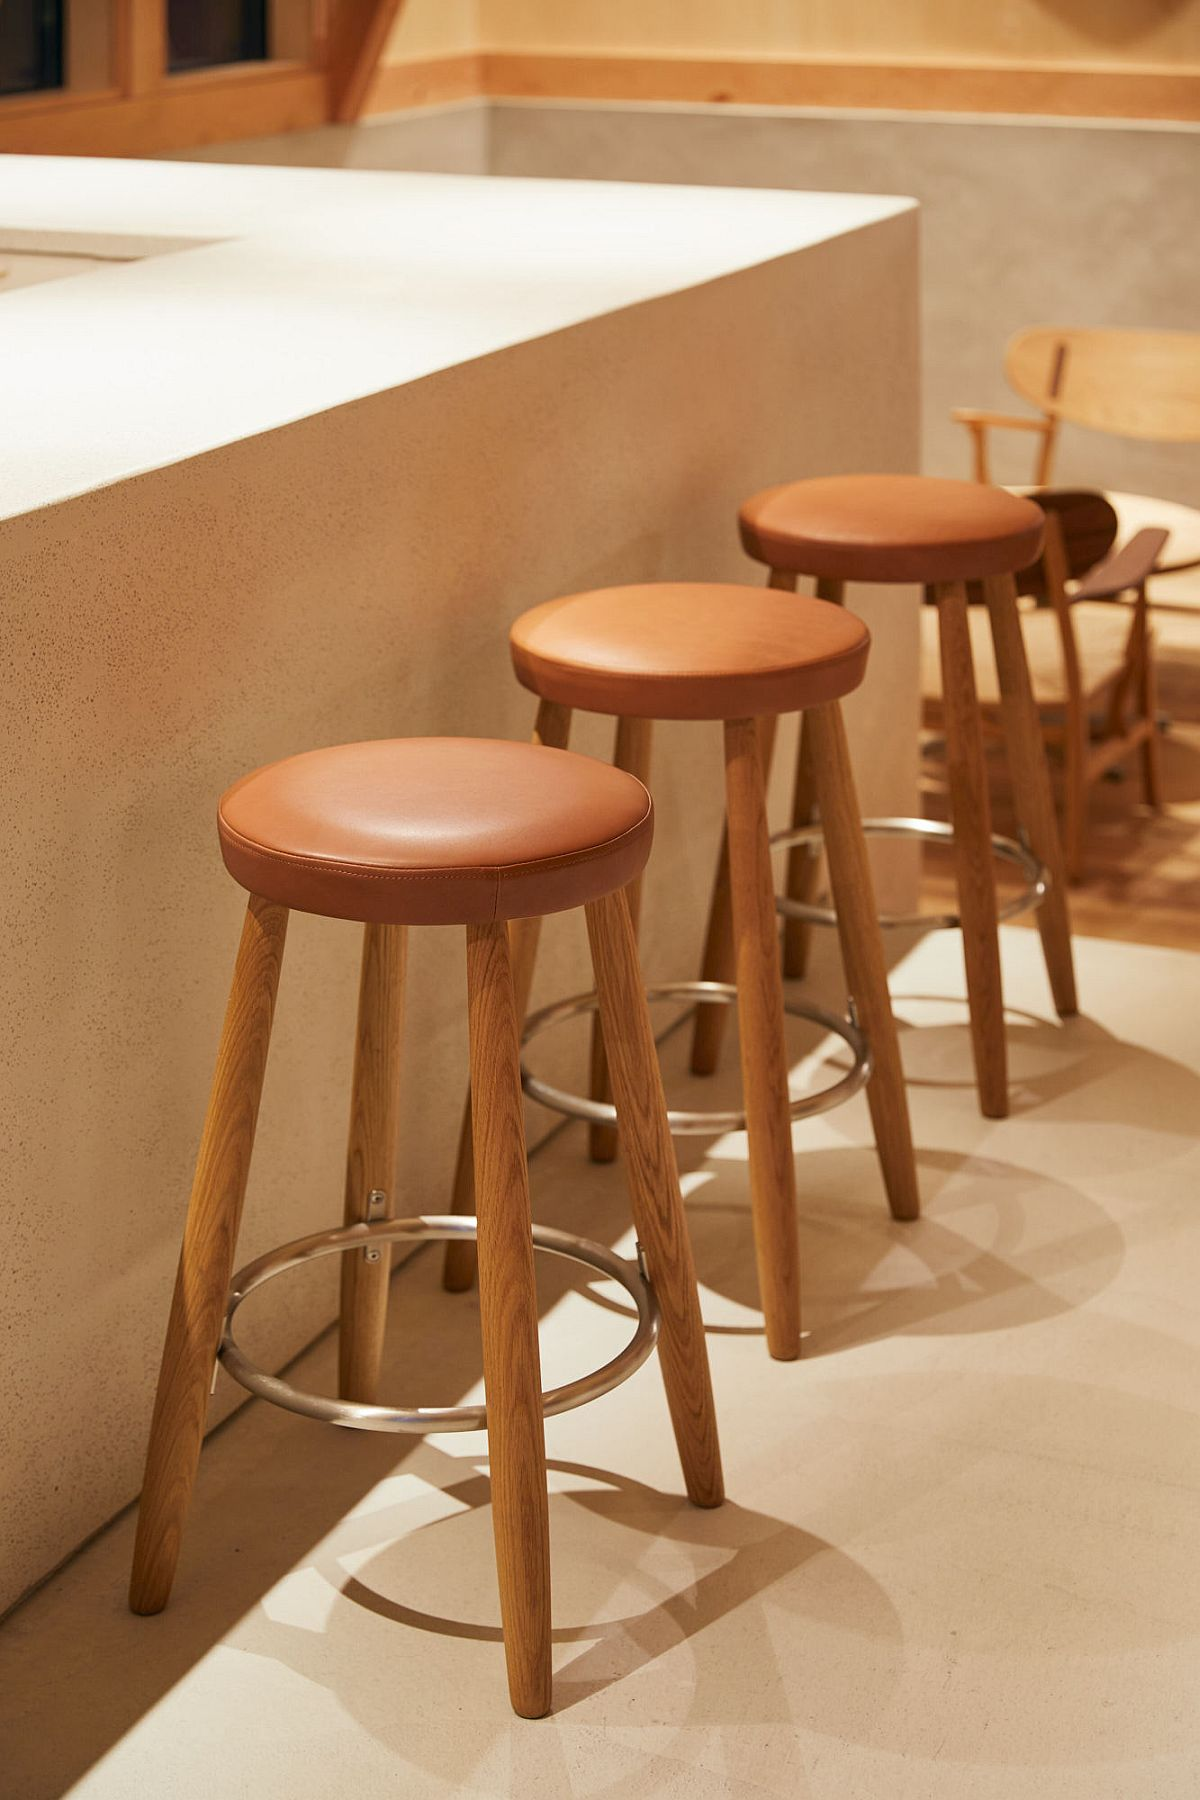 A-neutral-backdrop-allows-the-wooden-furniture-and-features-to-shine-through